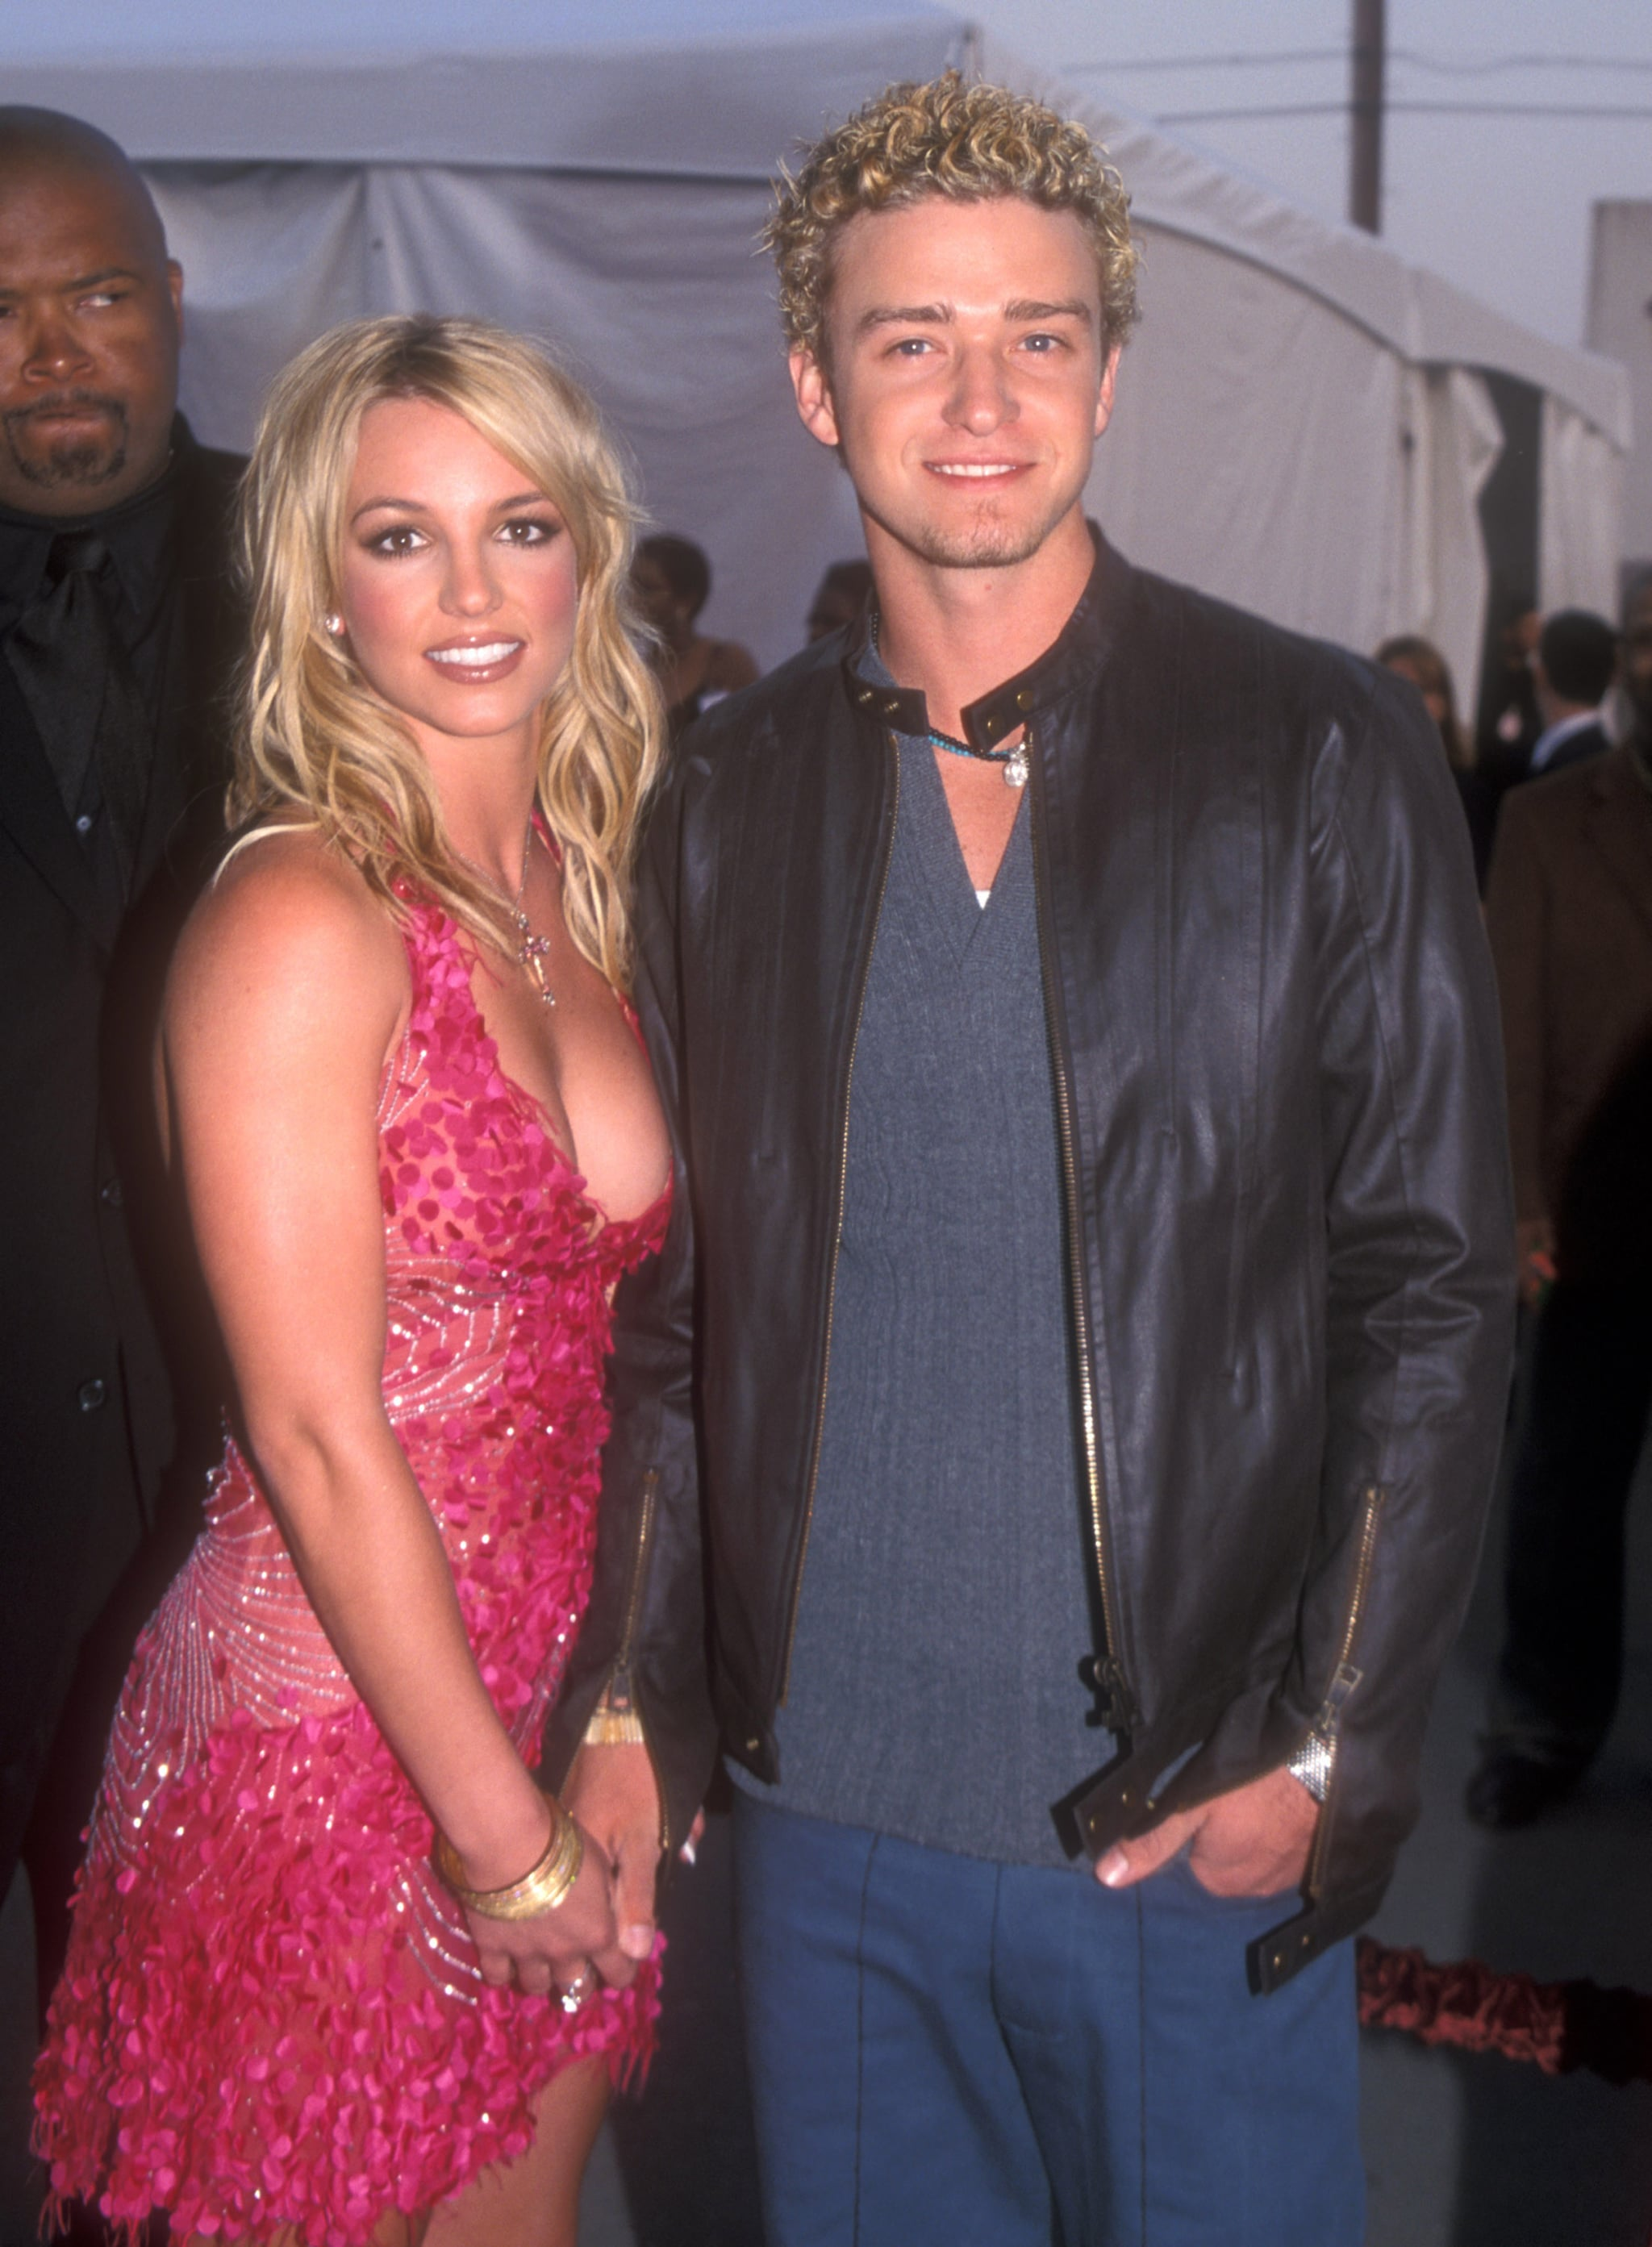 Britney Spears And Justin Timberlake 10 Celebrity Couples Who Found Love On The Disney Channel Even If It Didn T Last Popsugar Celebrity Photo 2